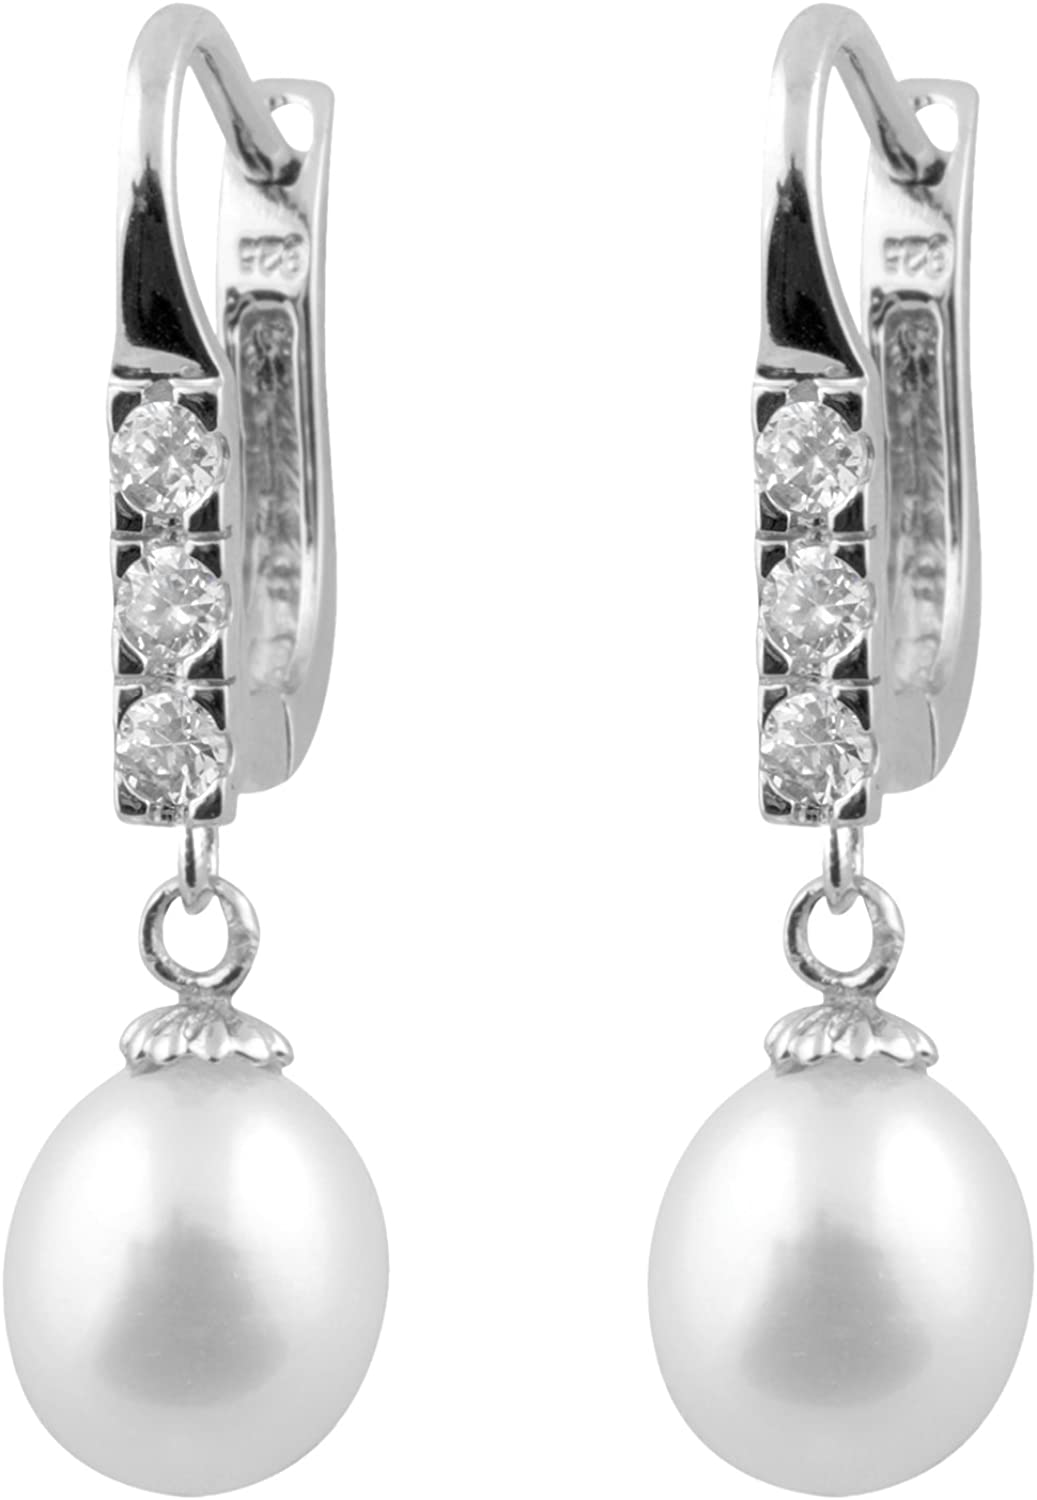 Handpicked 7.5-8mm Freshwater Cultured Pearls 925 Sterling Silver Drop Dangling Earrings with CZ Accent